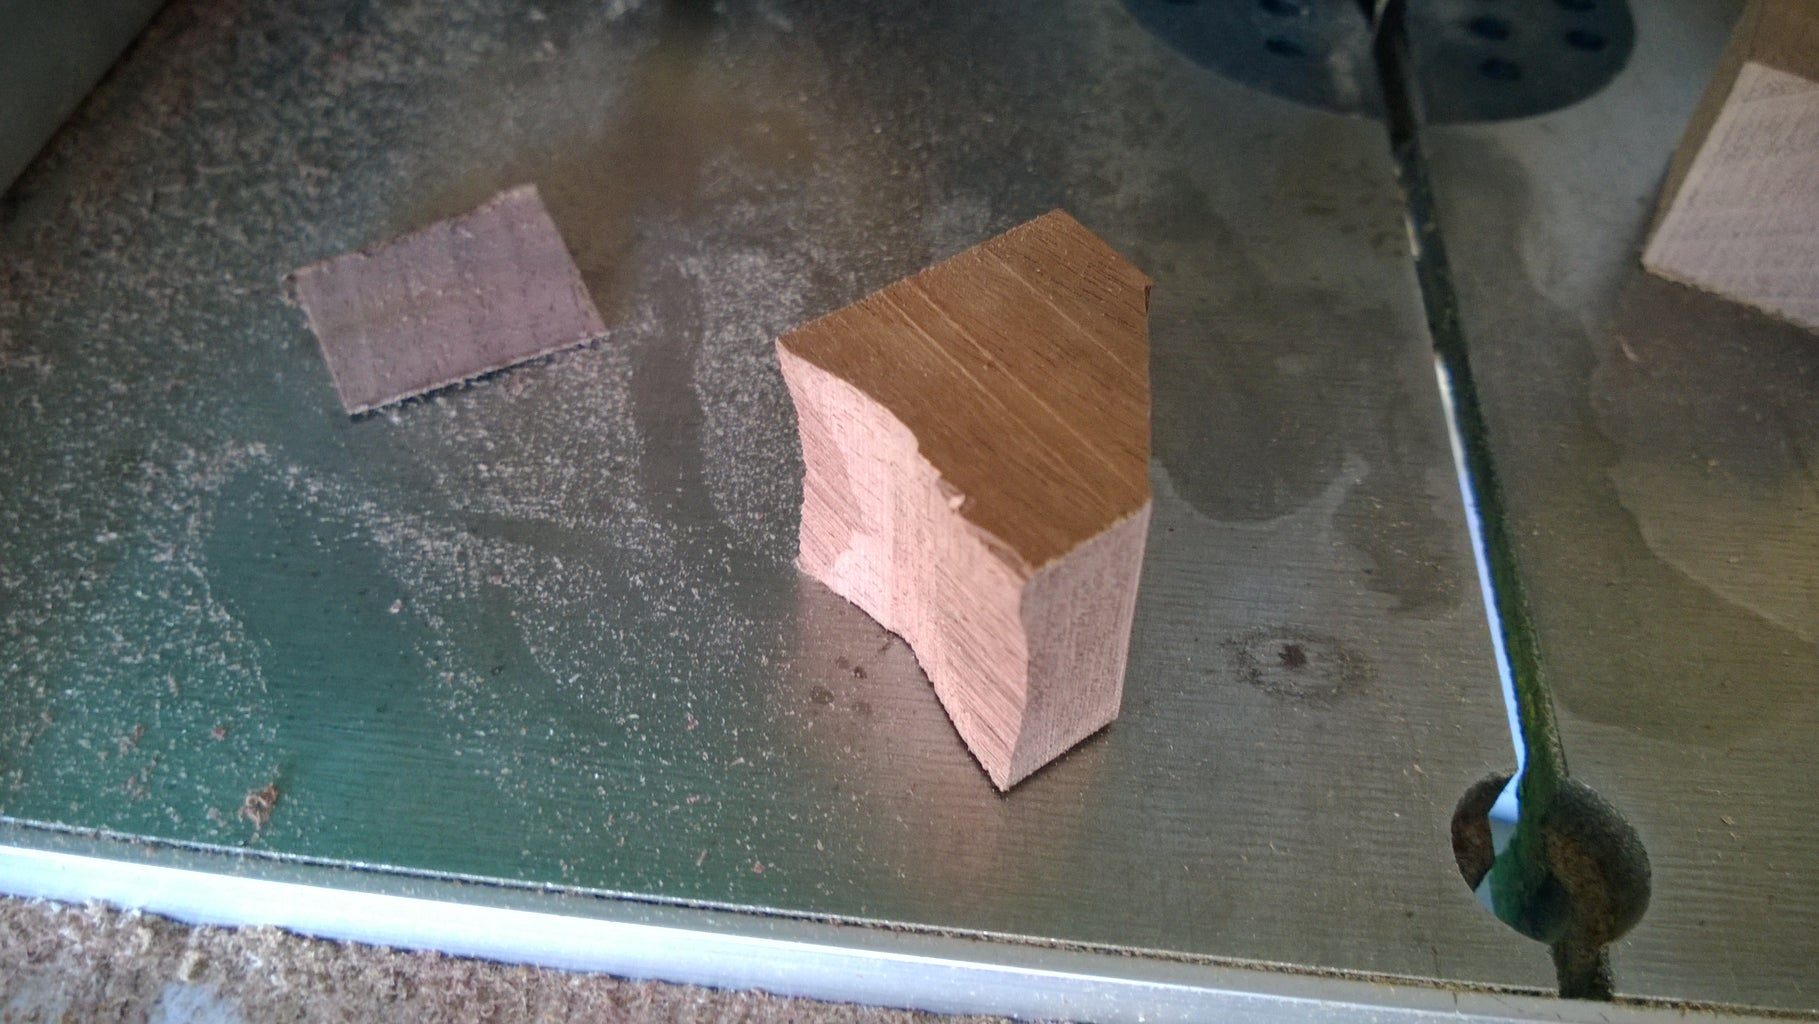 Cut the Lid Insert, Handle, and Legs